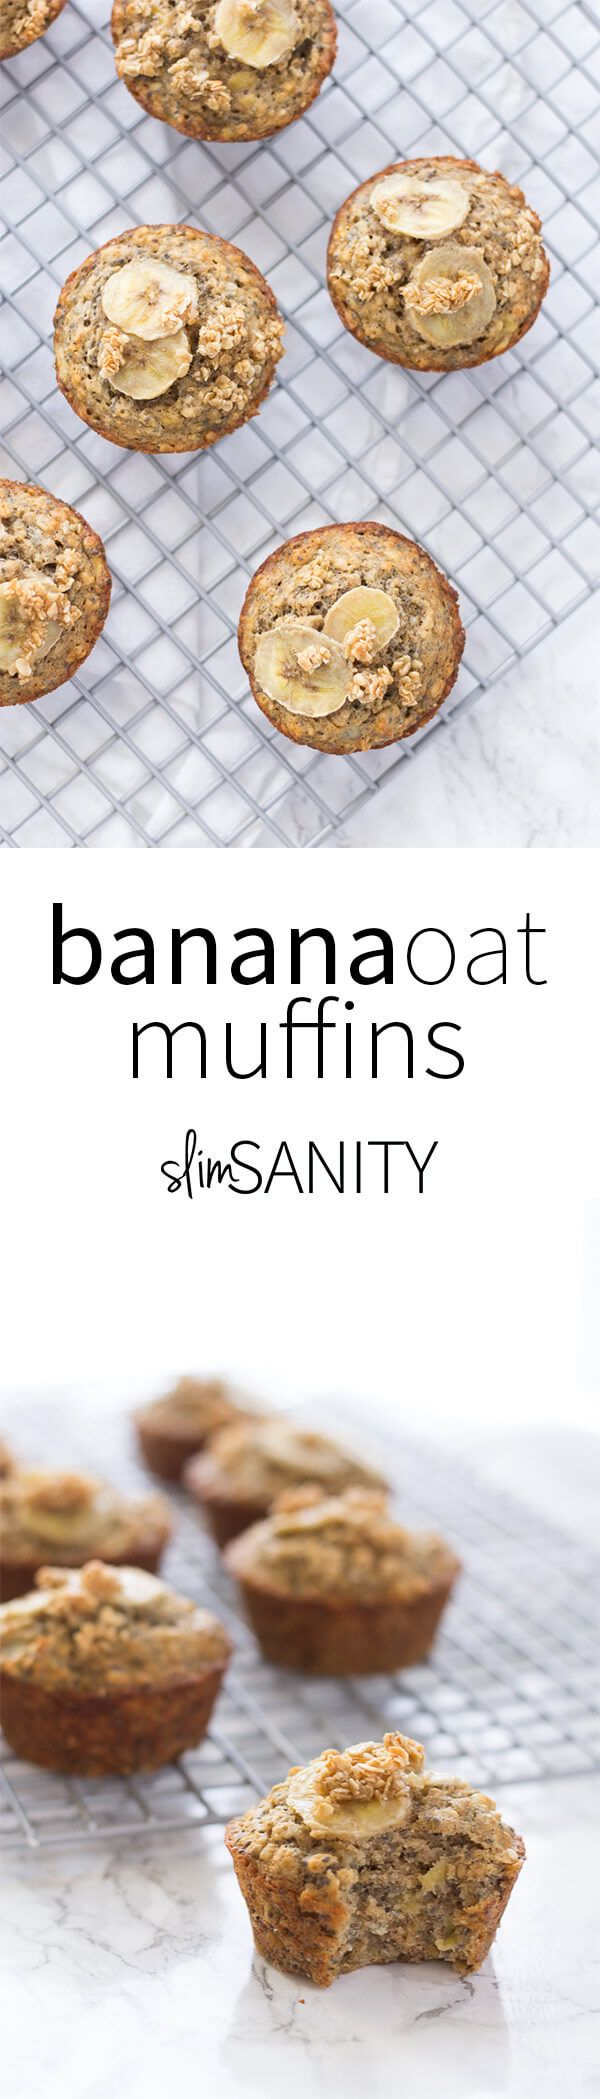 This healthy banana oat muffins recipe is made with reduced flour and reduced sugar. They make for the perfect filling snack or breakfast on-the-go!